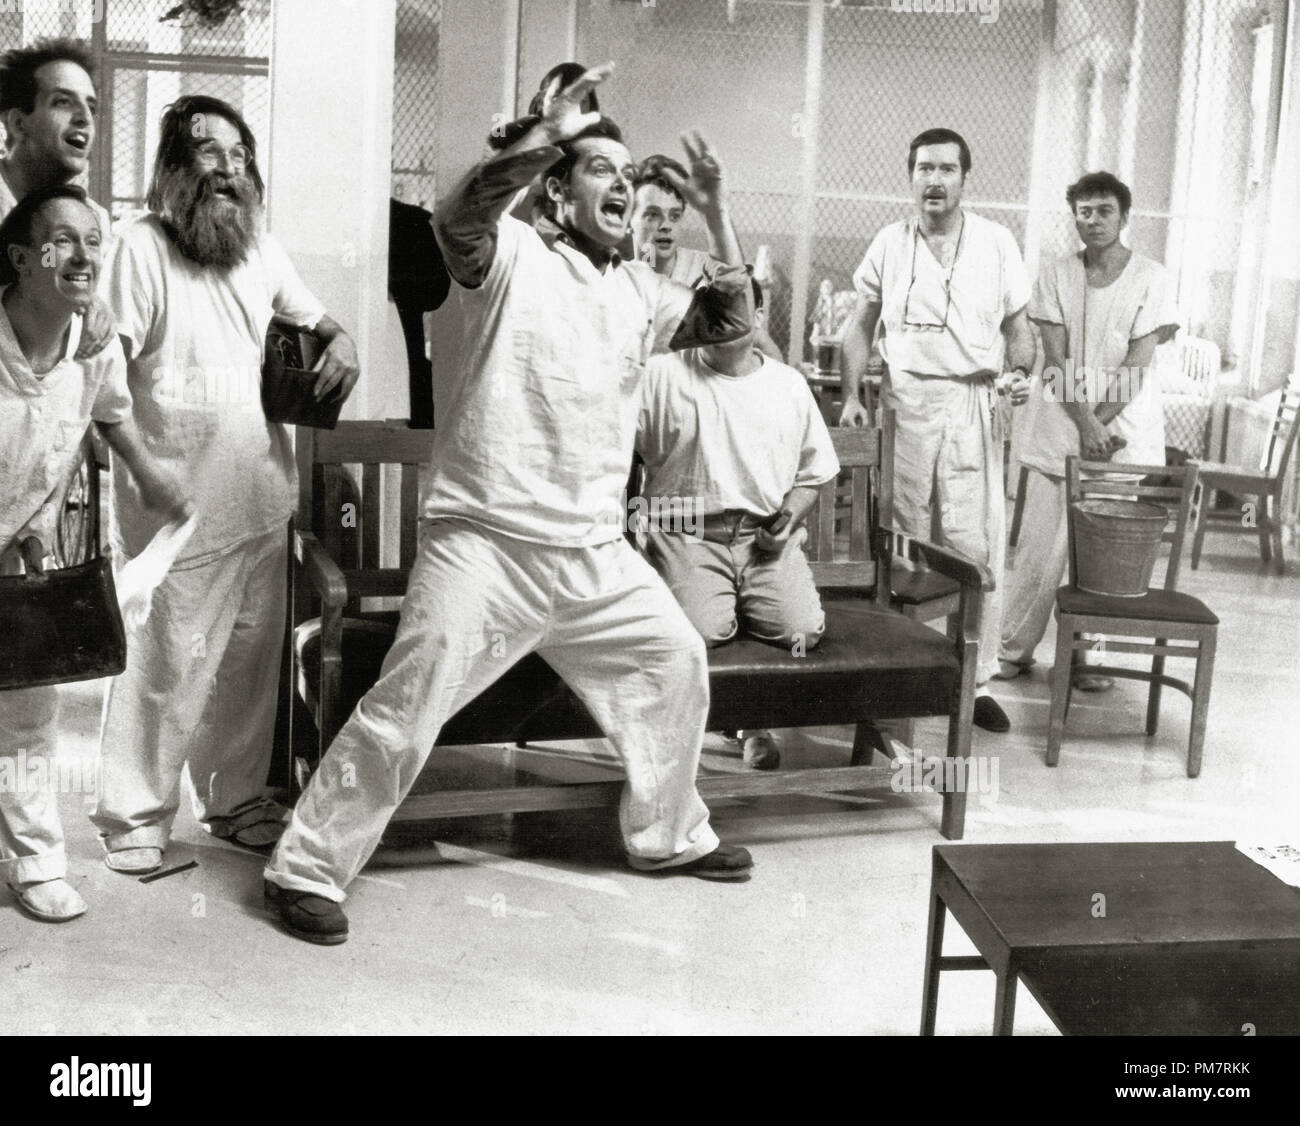 Jack Nicholson, 'One Flew Over the Cuckoo's Nest' 1975 UA  File Reference # 31386_402 - Stock Image